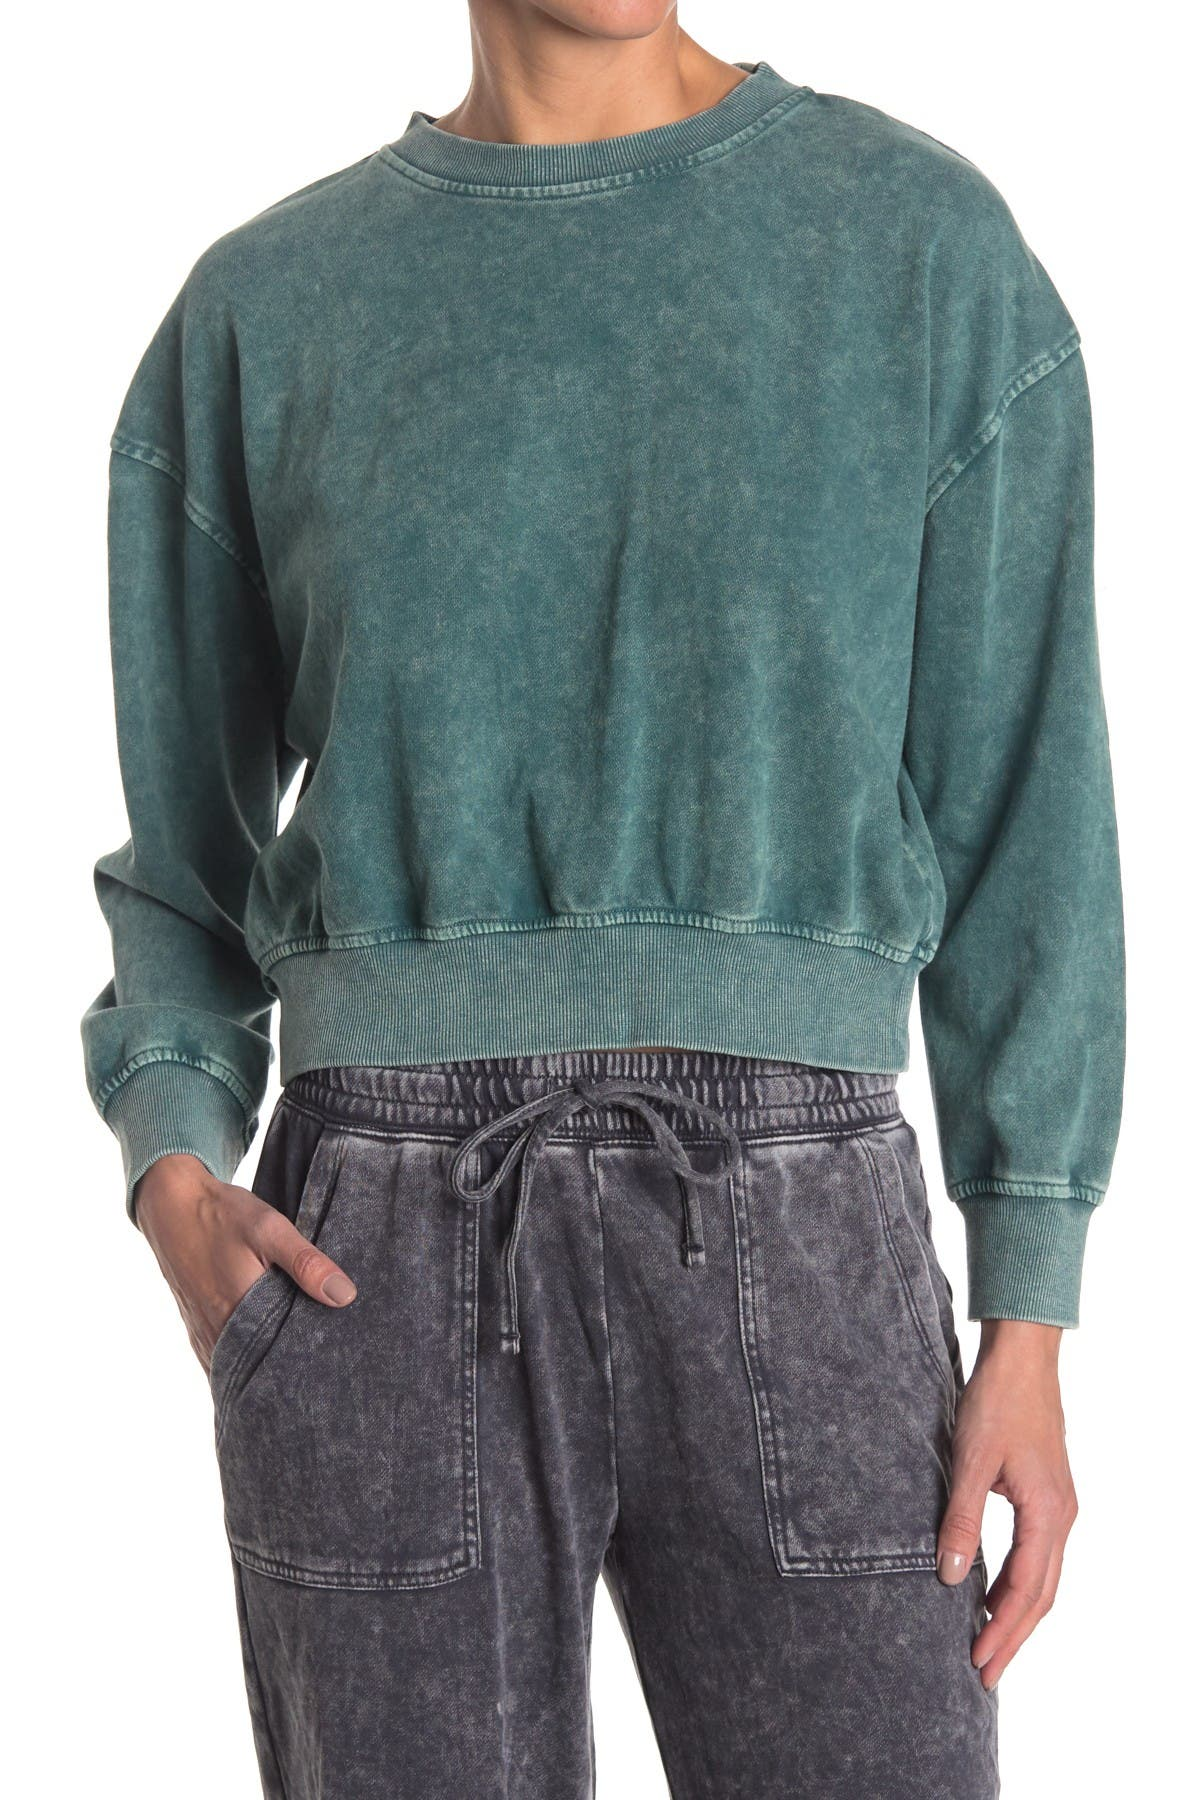 Image of SUPPLIES BY UNIONBAY Washed Out Knit Sweater